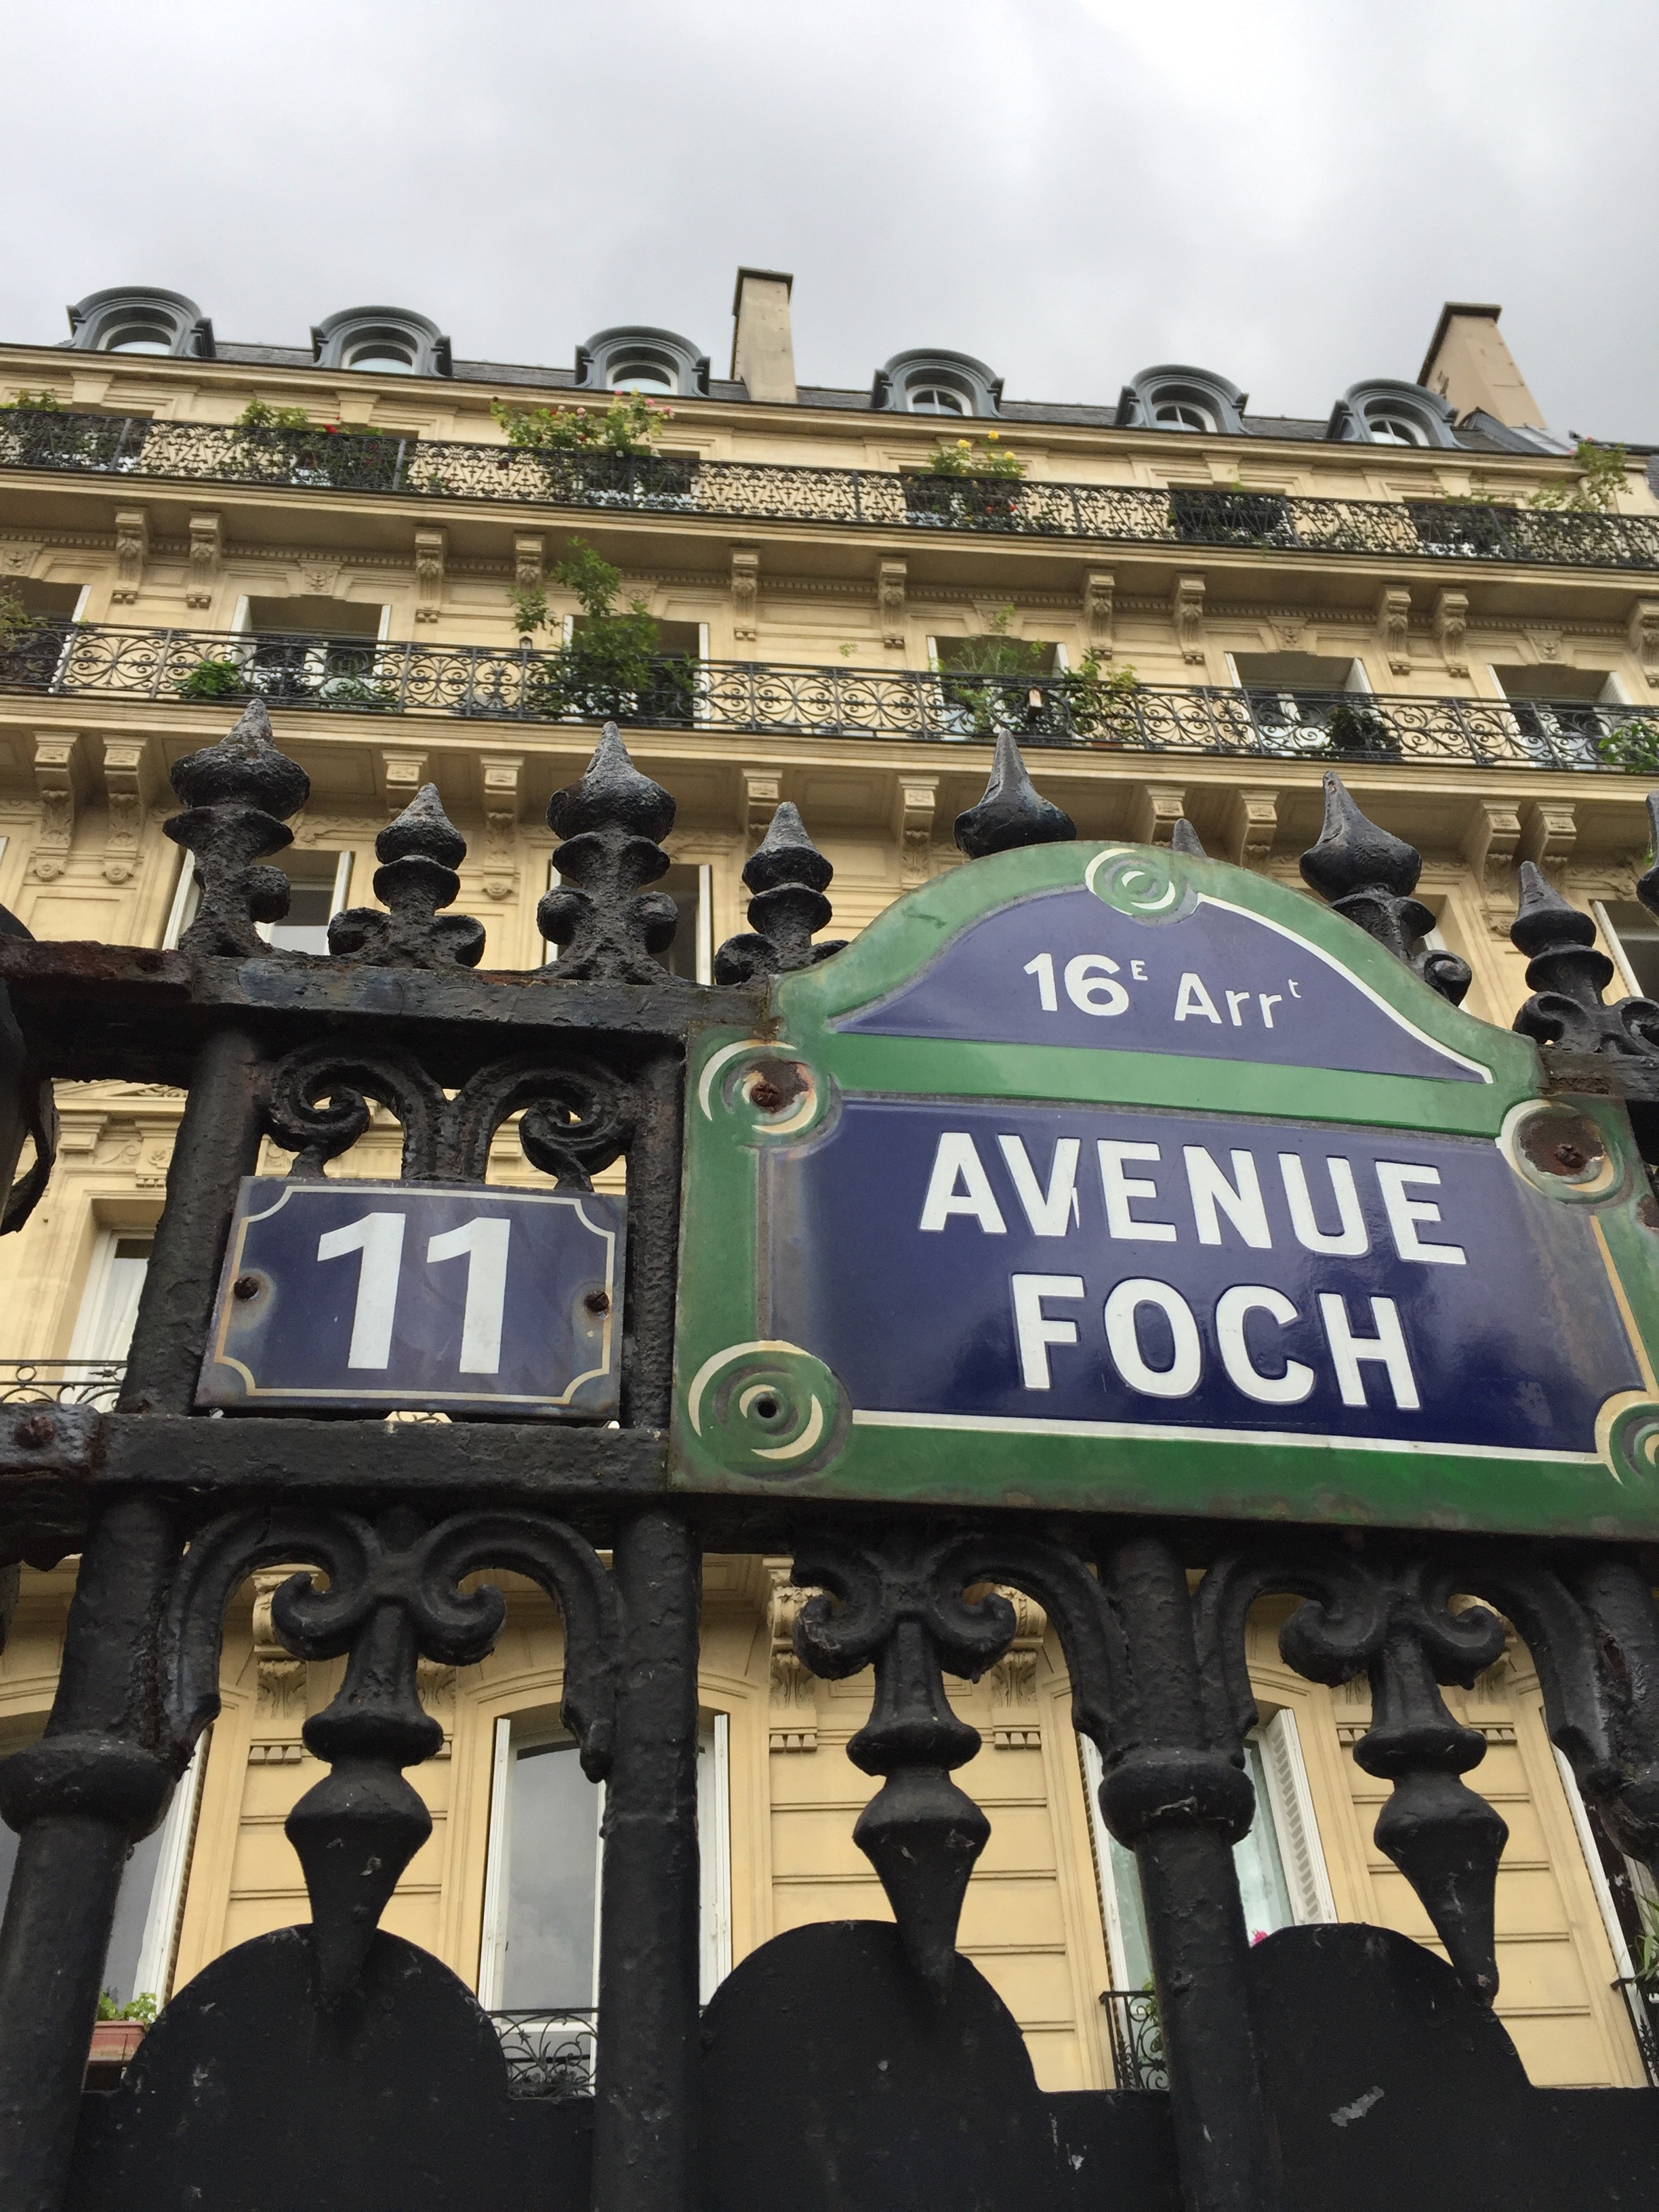 A Timeline of Nazi Occupied Paris: June 14, 1940 to August 21, 1944 ...